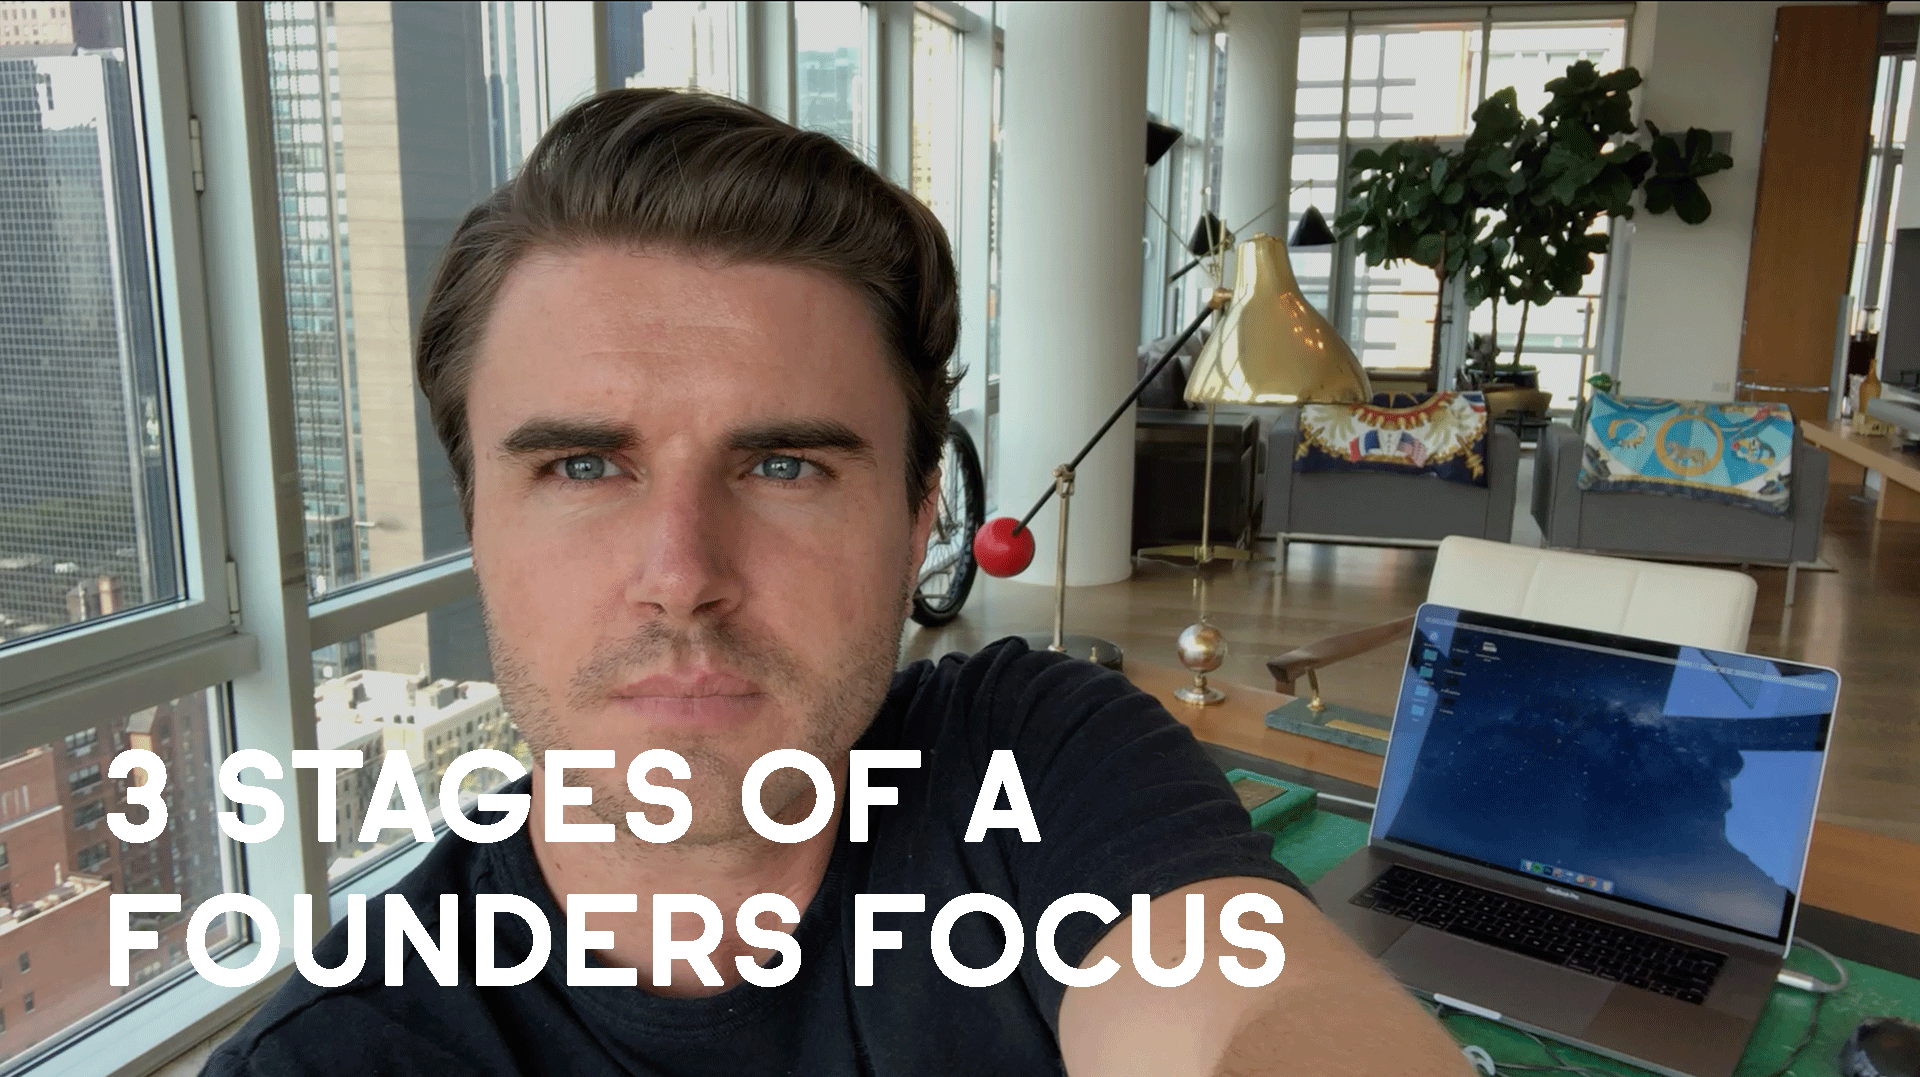 The 3 Stages Of A CEO/Founders Focus